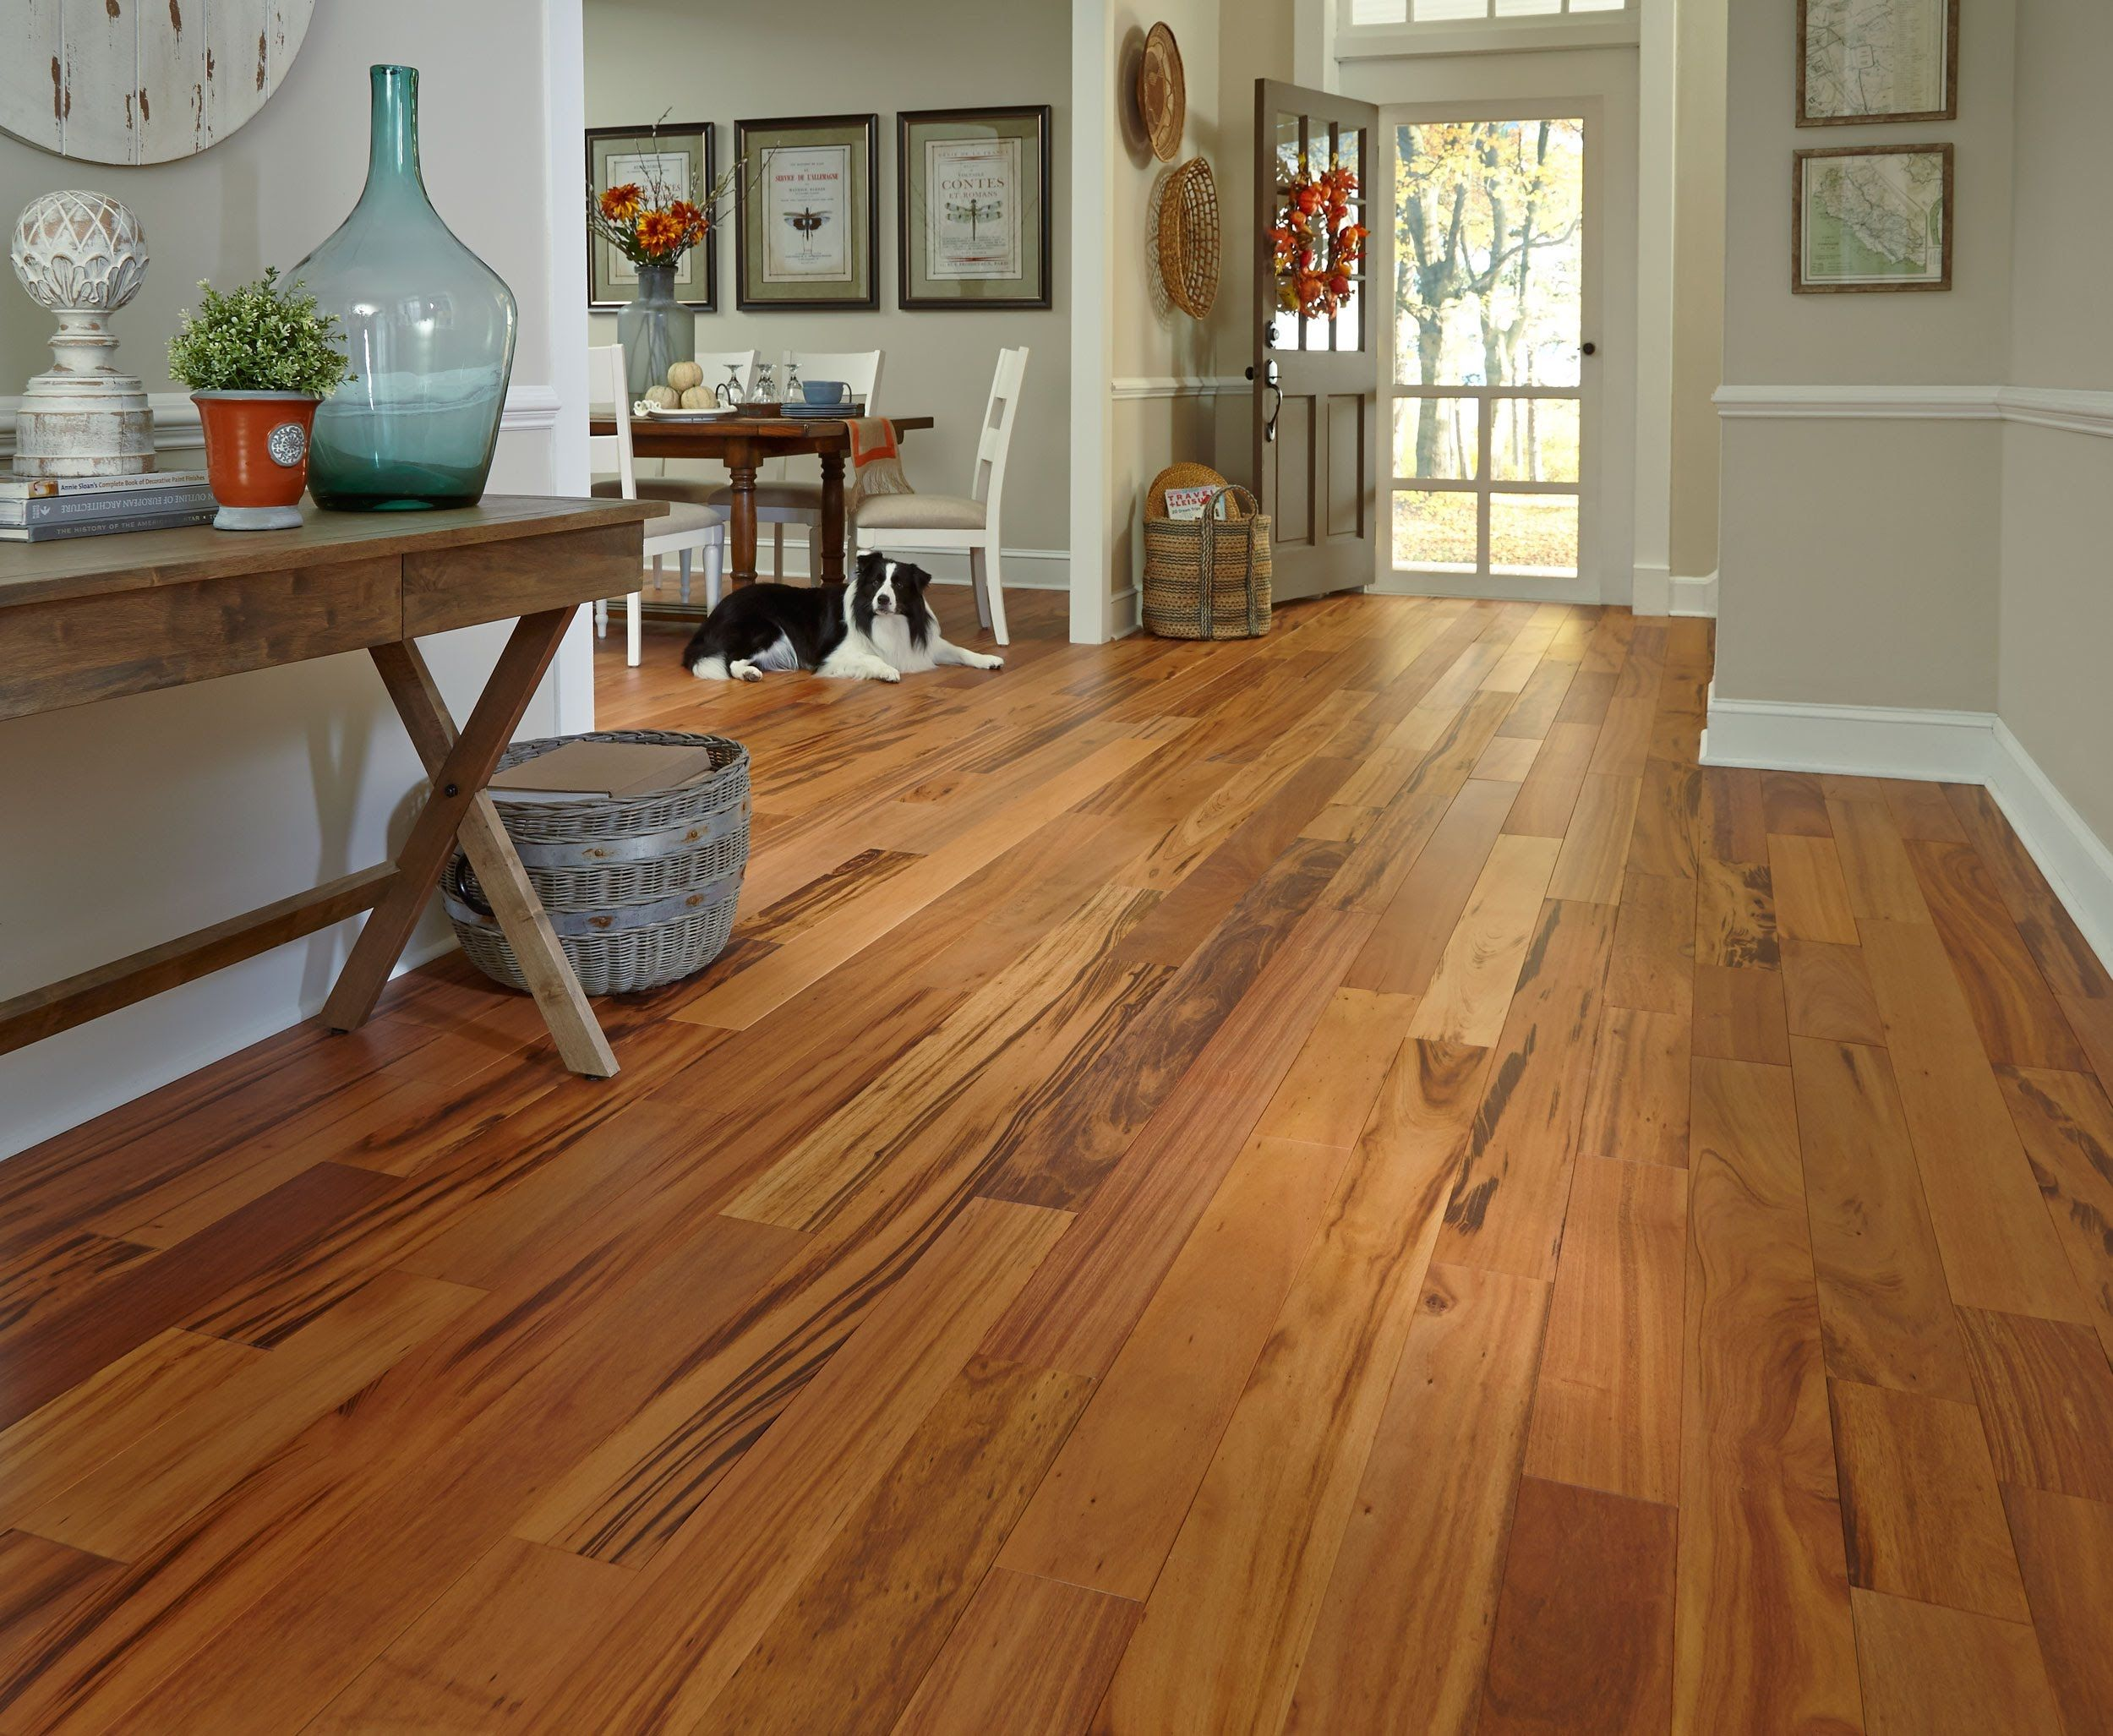 The Most Amazing Along With Lovely Hardwood Floors For Less Lumber Liquidators With Regard To Existing Property Flooring Engineered Hardwood Flooring Flooring Trends